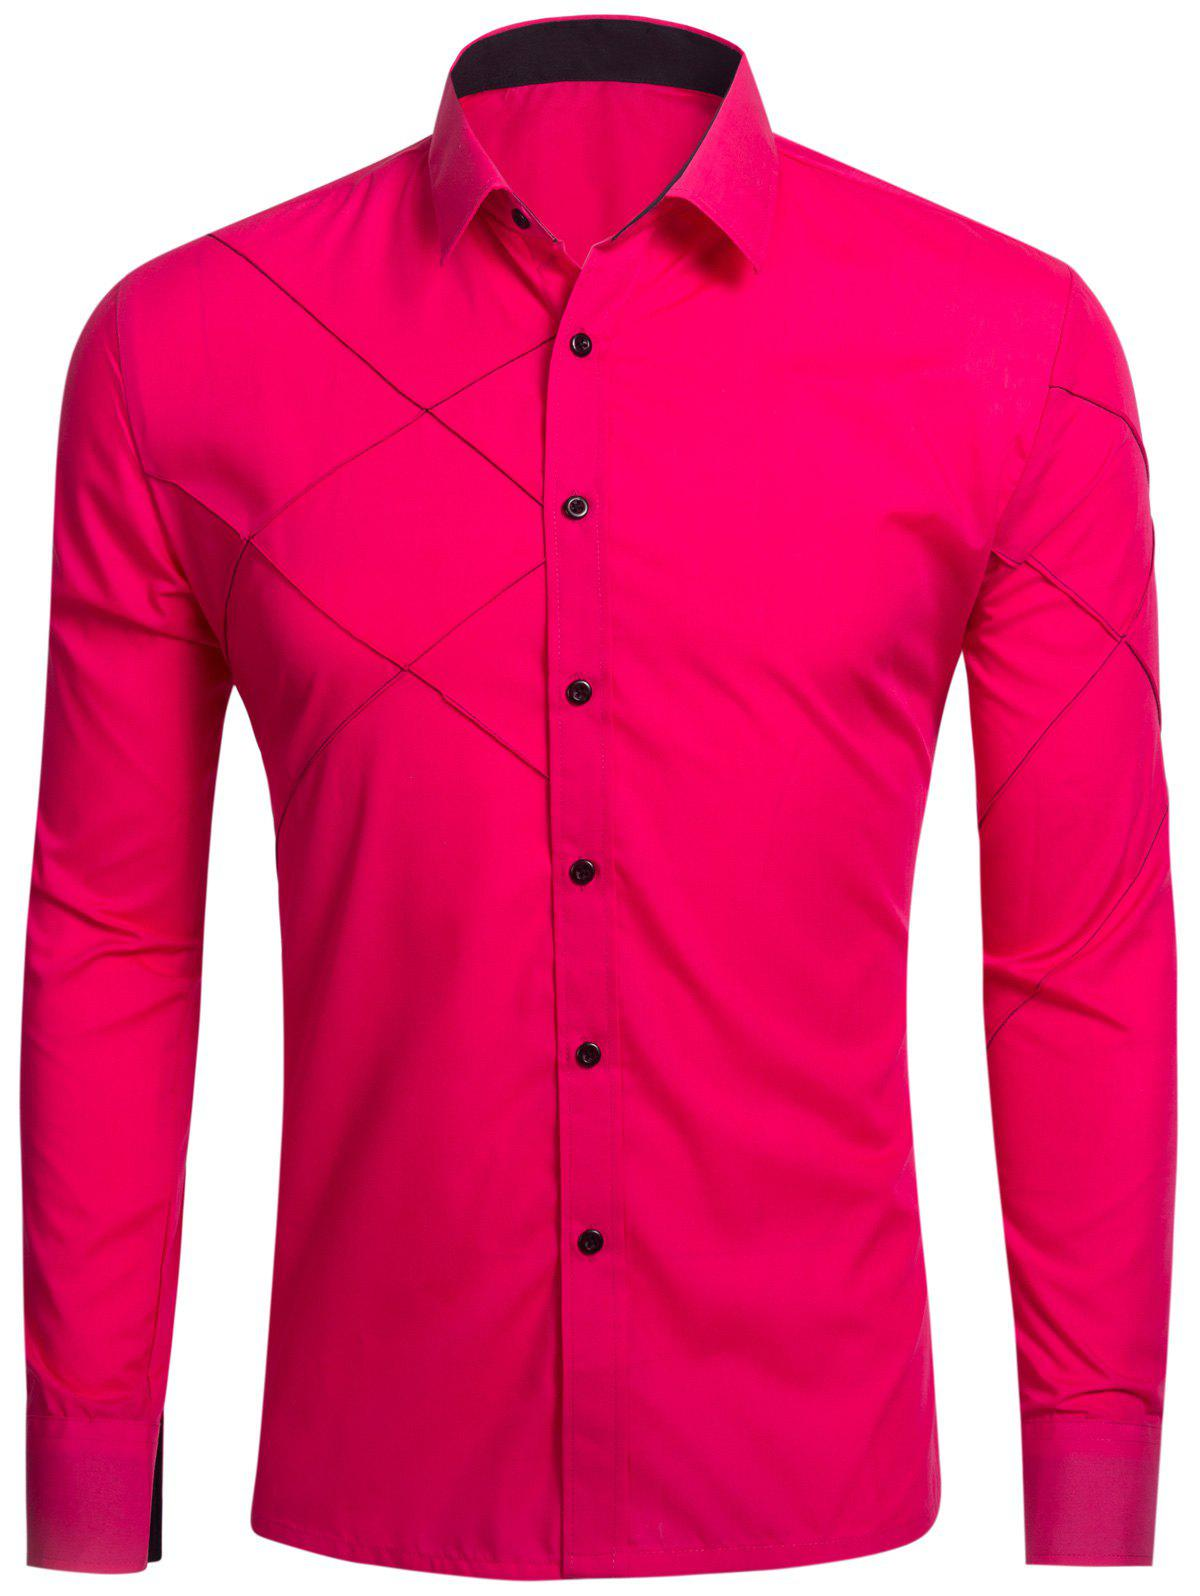 Piquez à manches longues Button Up Shirt - Rose Rouge 2XL